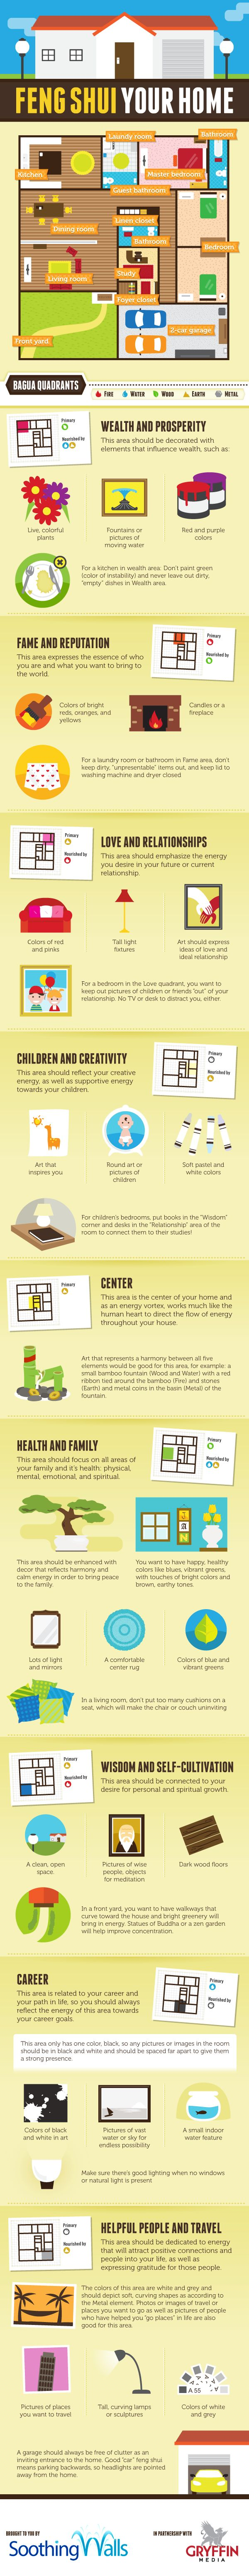 11 best feng shui images on Pinterest | Feng shui, For the home ...